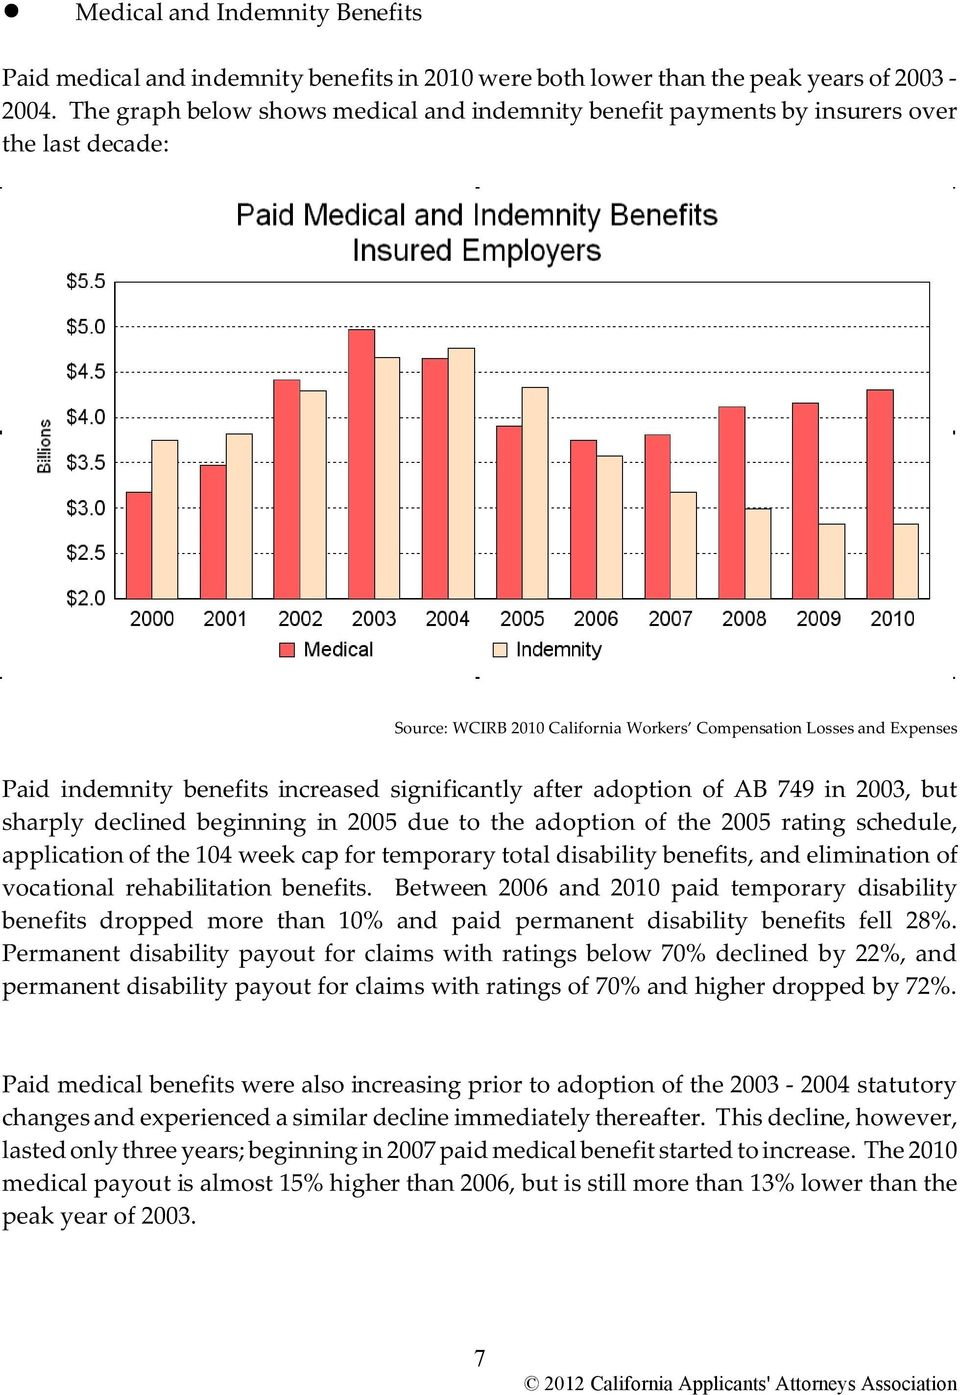 significantly after adoption of AB 749 in 2003, but sharply declined beginning in 2005 due to the adoption of the 2005 rating schedule, application of the 104 week cap for temporary total disability